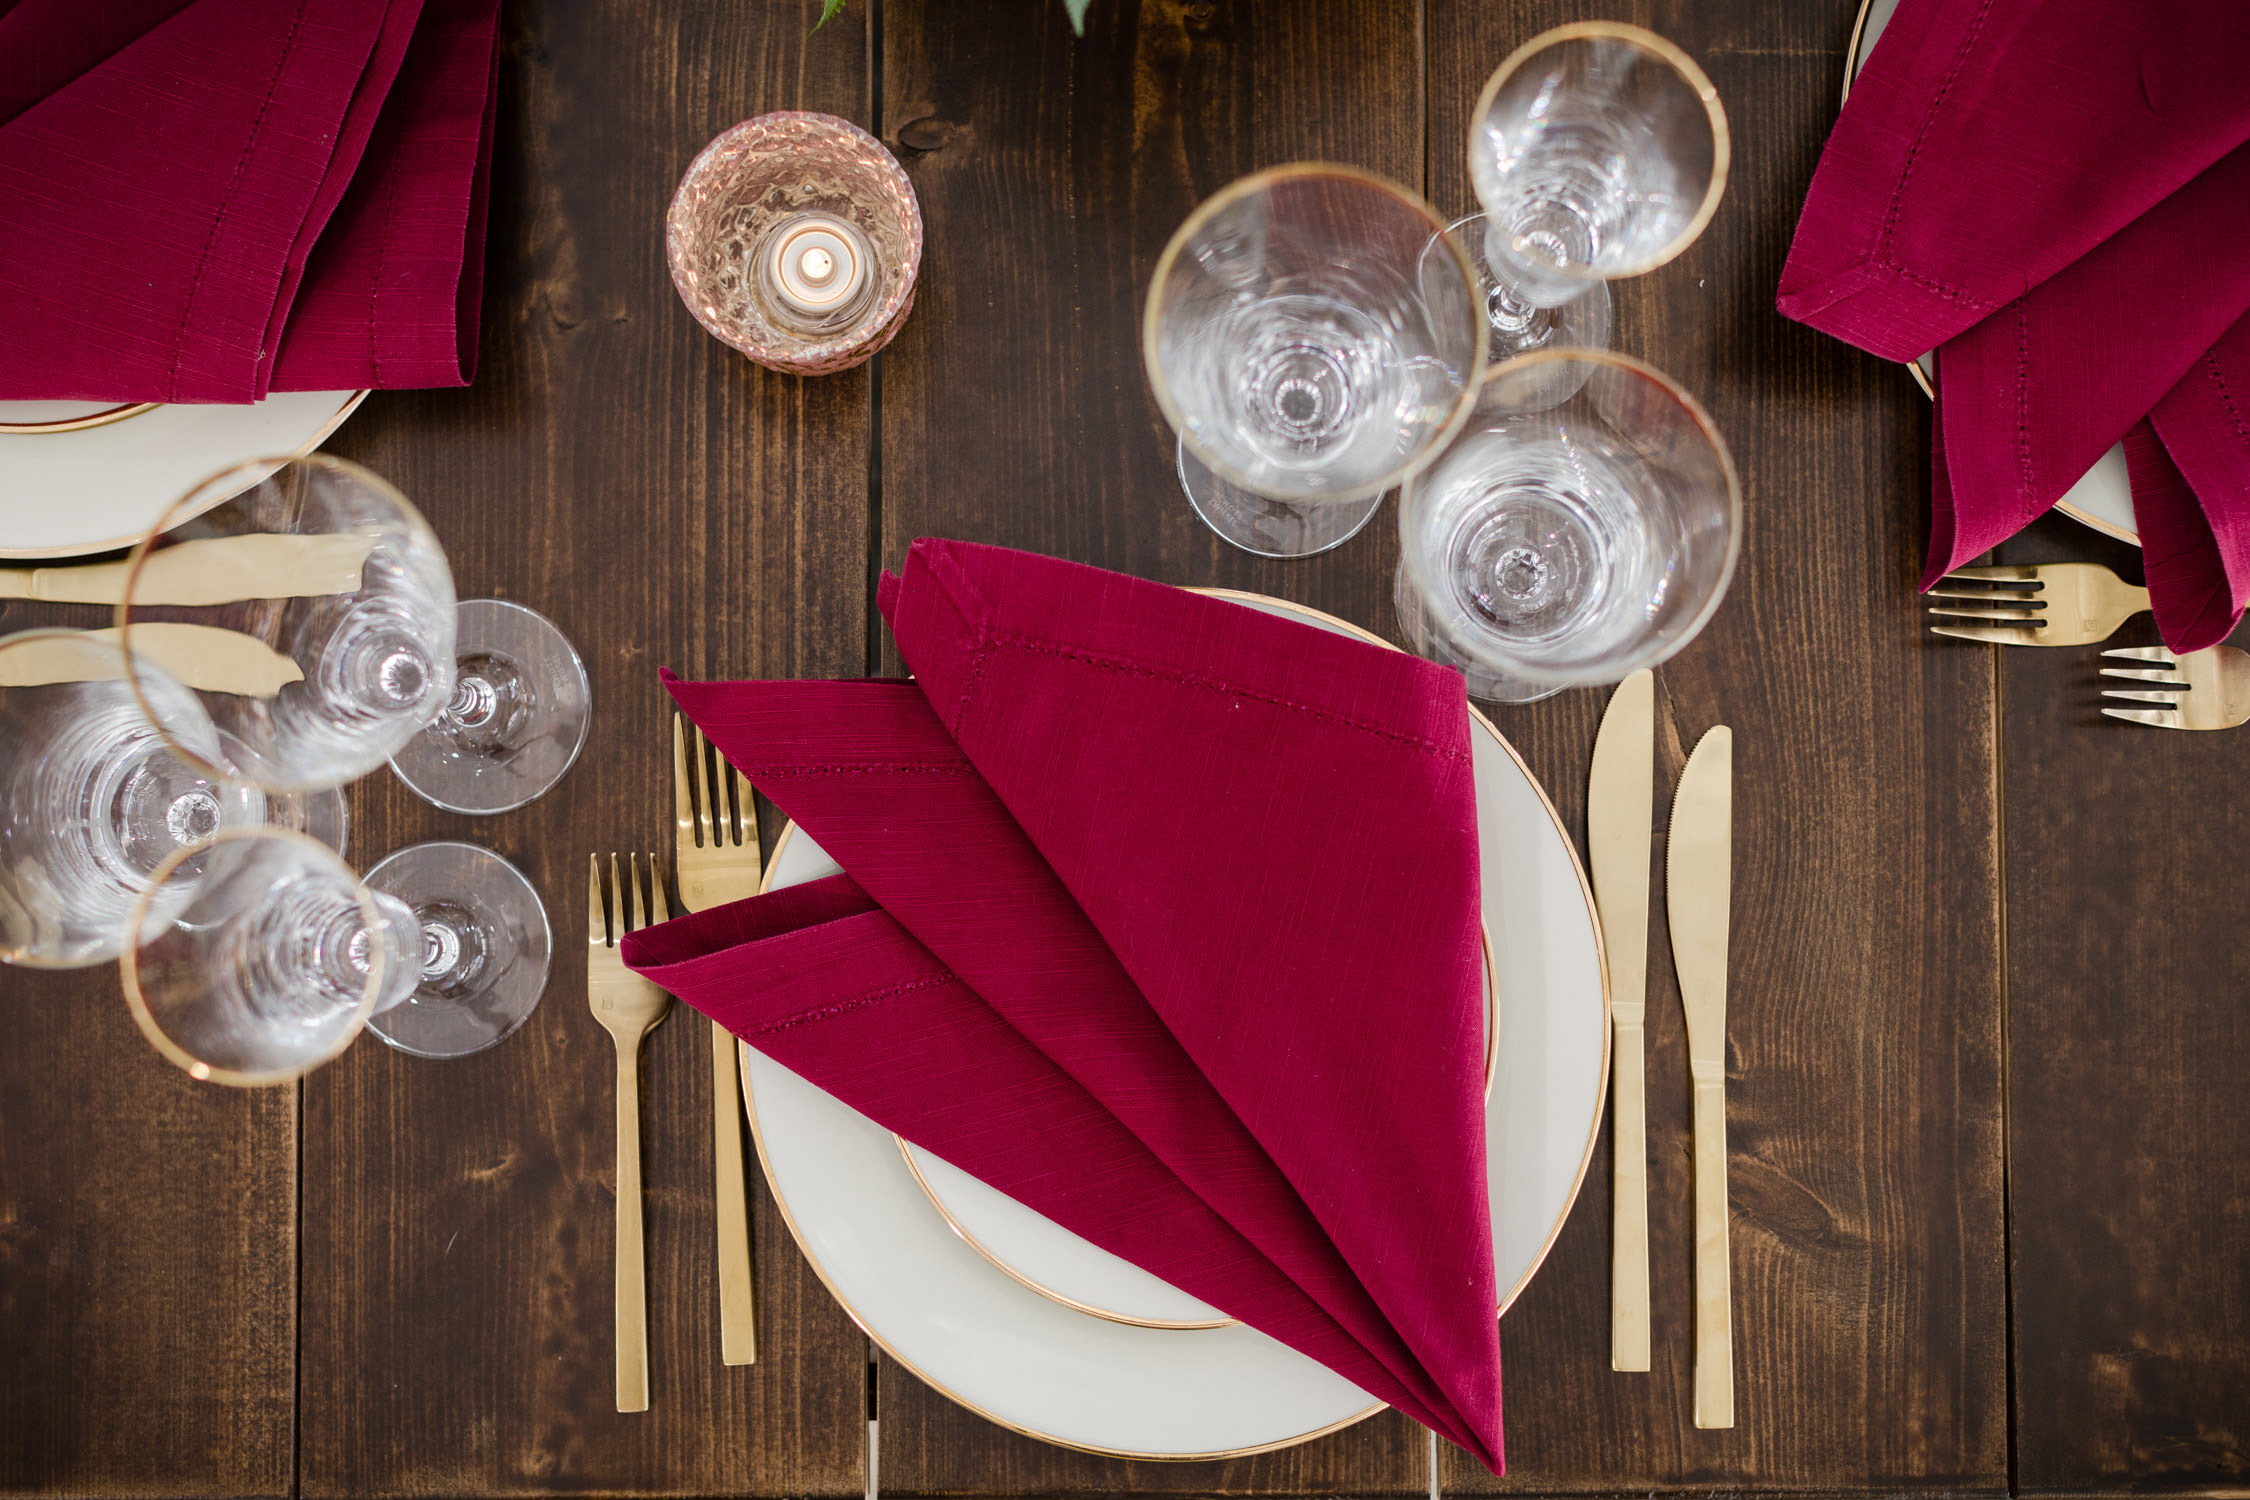 Cranberry linens and gold flatware are set on a farmhouse wood table from the Vermont Tent Company in a styled wedding table setting at the Essex Resort by photographer Stina Booth